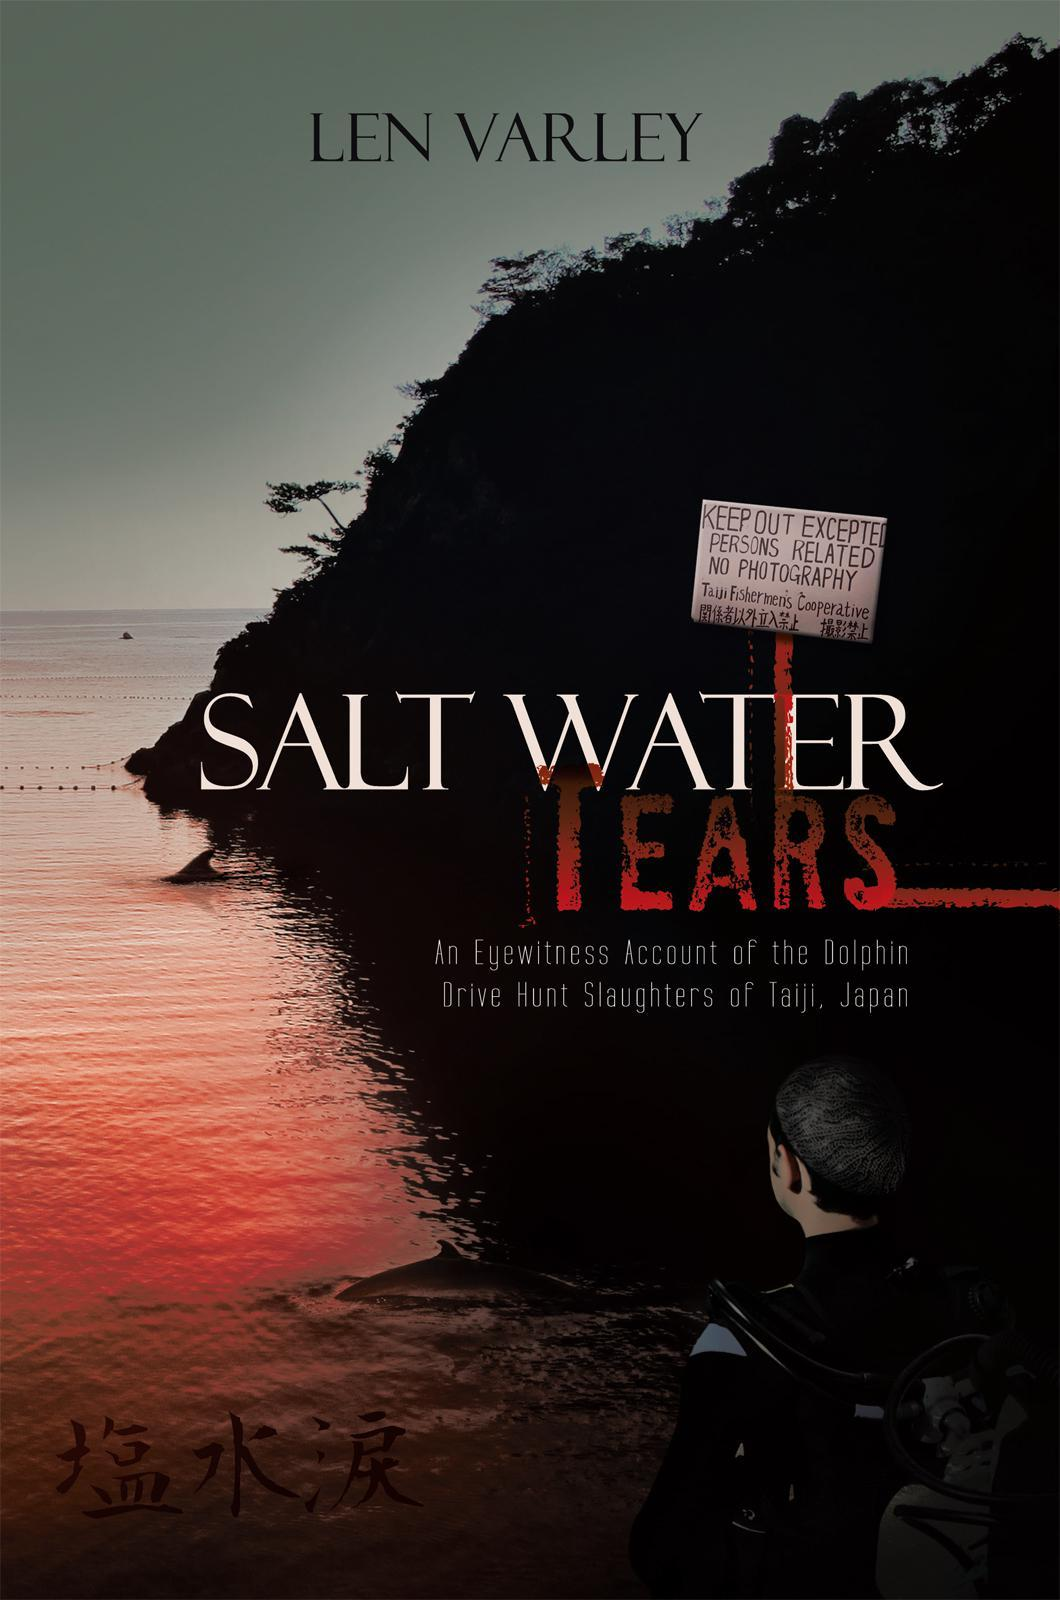 Salt Water Tears: An Eyewitness Account of the Dolphin Drive Hunt Slaughters of Taiji, Japan EB9781452502410